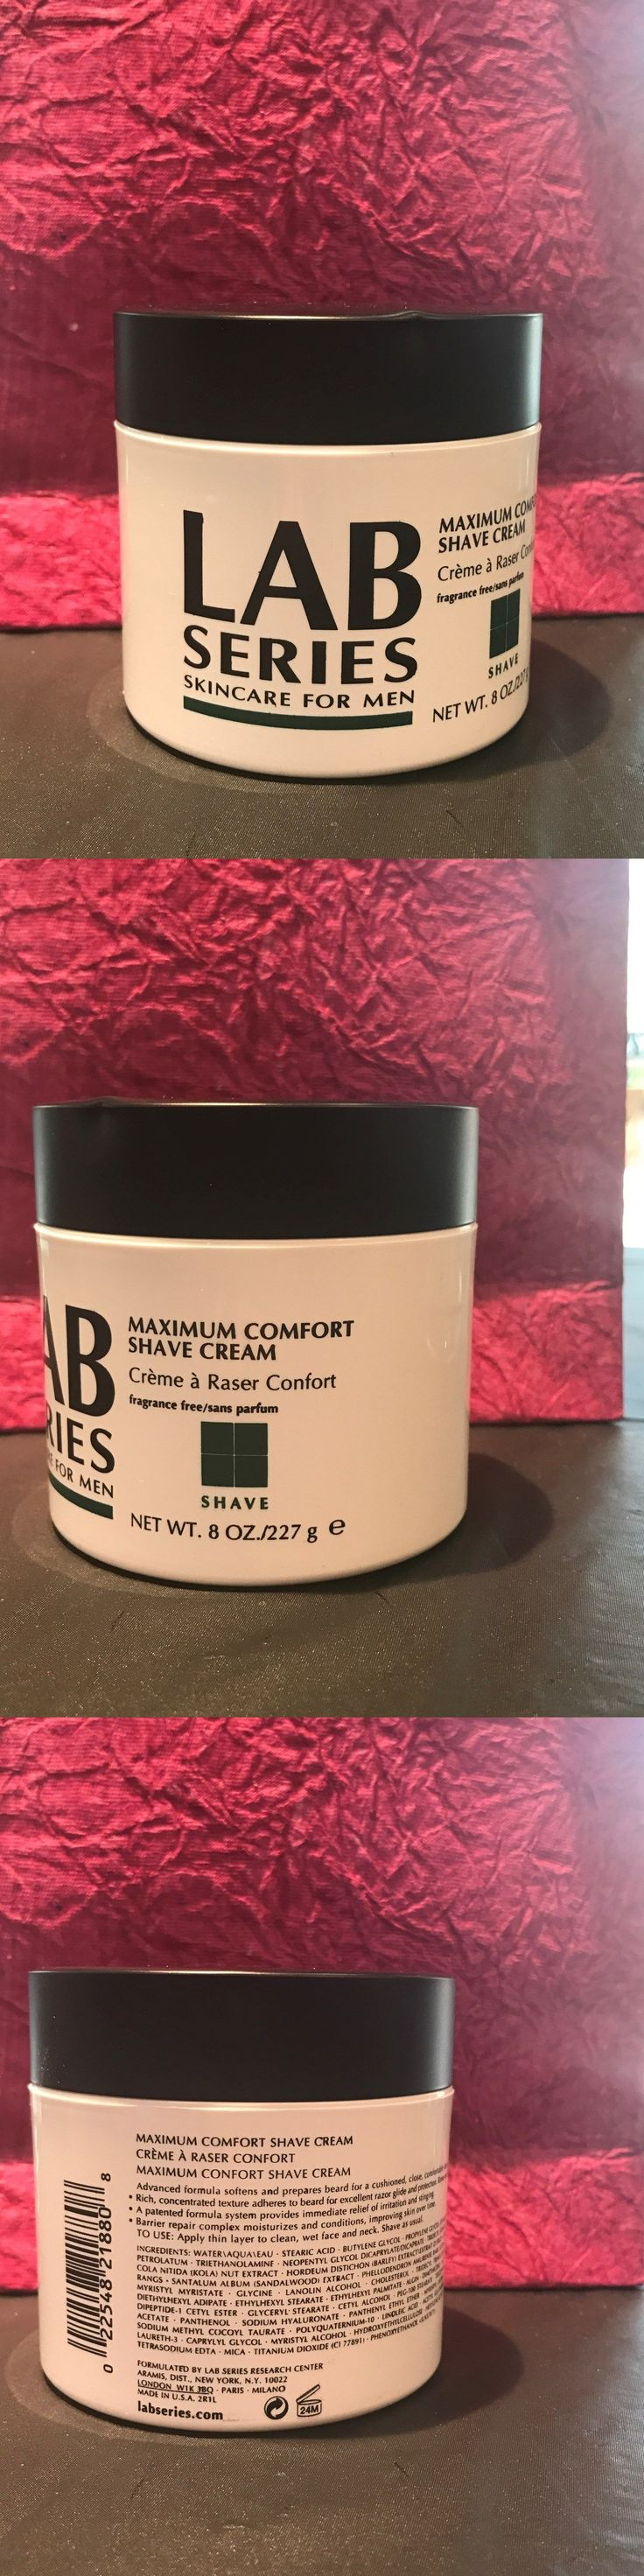 Shaving Creams Foams and Gels: Lab Series Maximum Comfort Men Shave Cream 8Oz New Same As Pics -> BUY IT NOW ONLY: $45.5 on eBay!